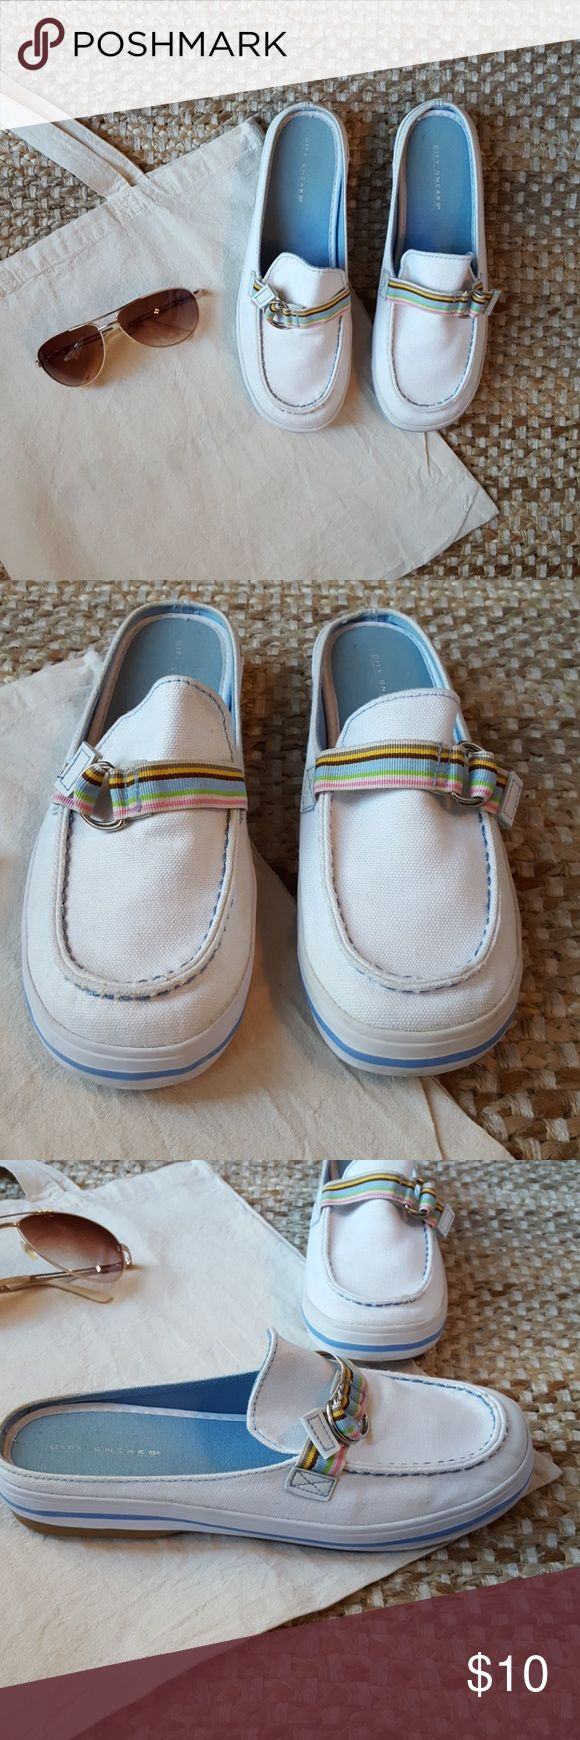 Women's canvas boat shoes White with multicolored strap. Slip on. Only worn a handful of times. Still have some fabric on soles that haven't worn off. Canvas top is still very white with little signs of wear. Size 6.5 but I usually wear a 7 and they fit just fine. City Sneaks Shoes Flats & Loafers